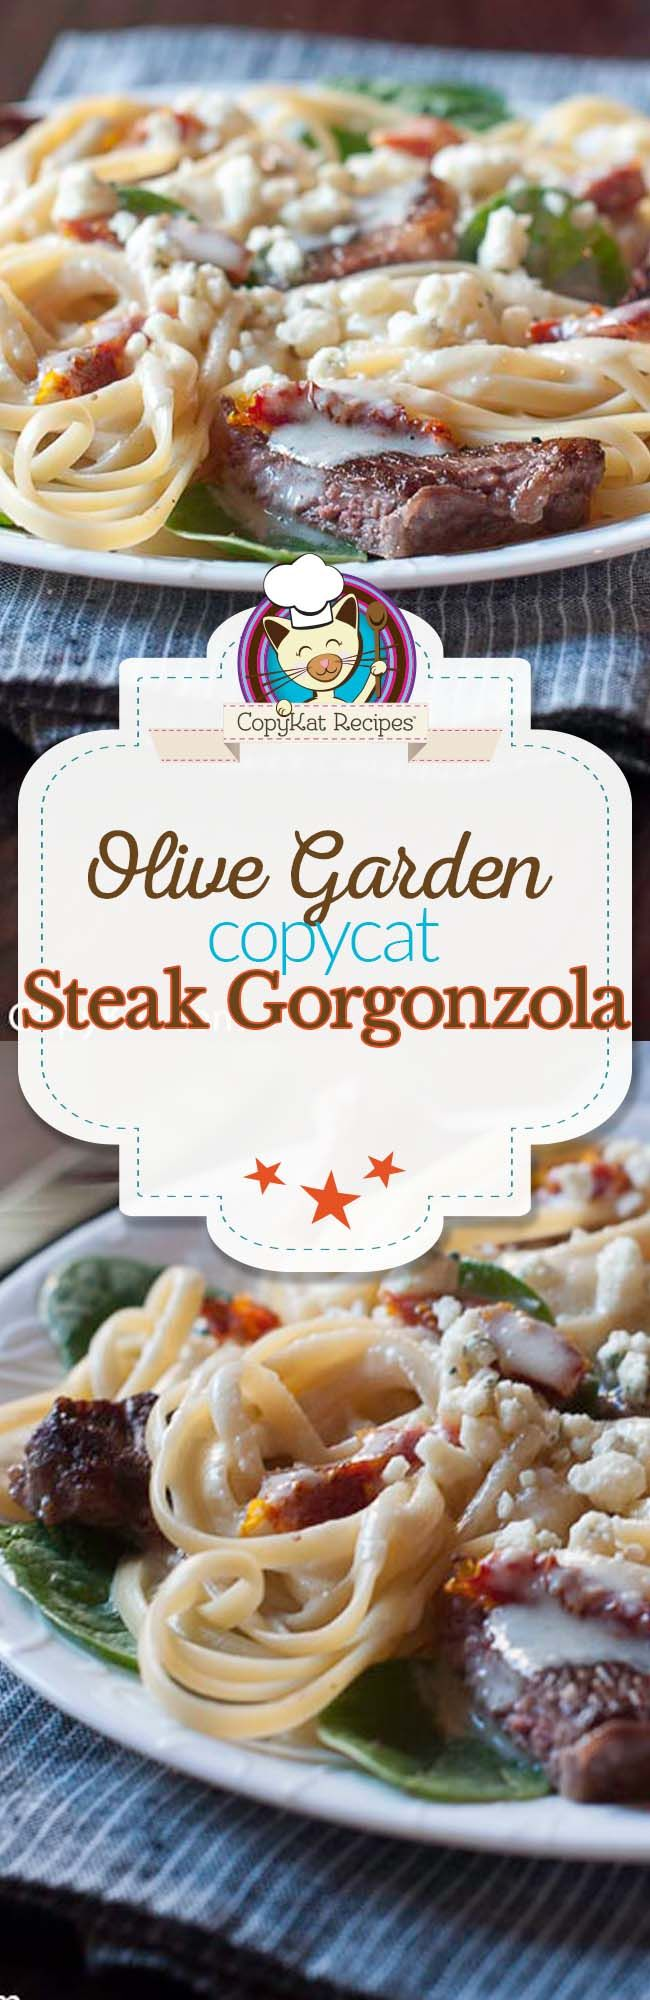 Olive Garden Steak Gorgonzola Recipe Olive Gardens Copycat Recipes And Copycat